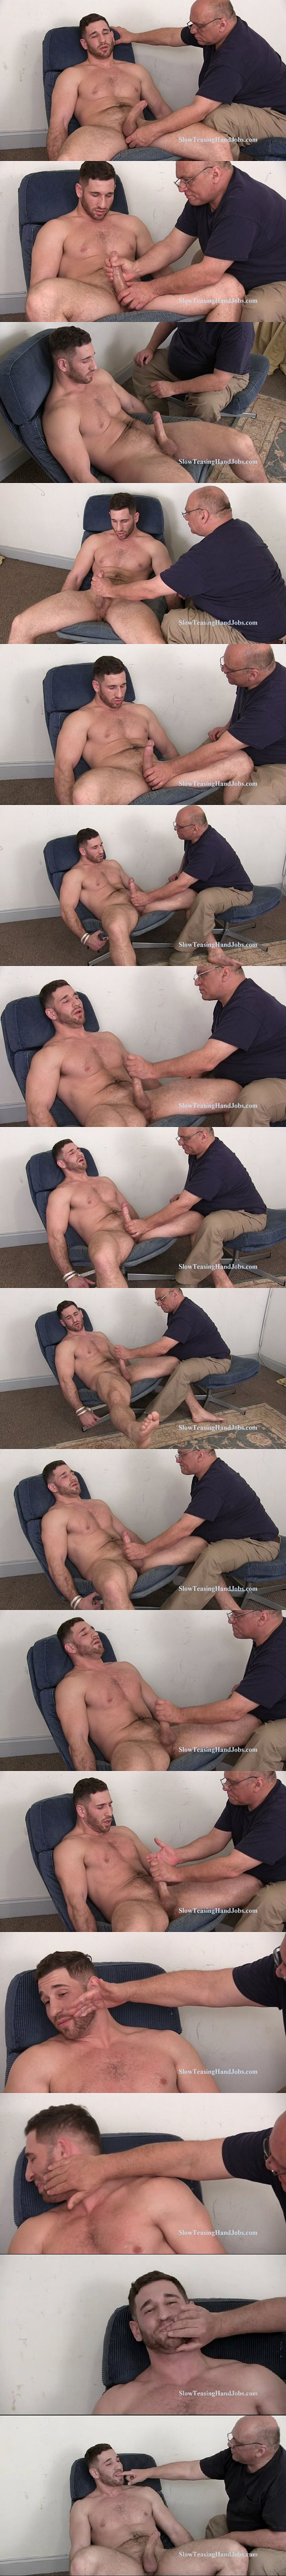 Hot macho hunk Anthony gets jerked off before he tastes his own load at Slowteasinghandjobs 02